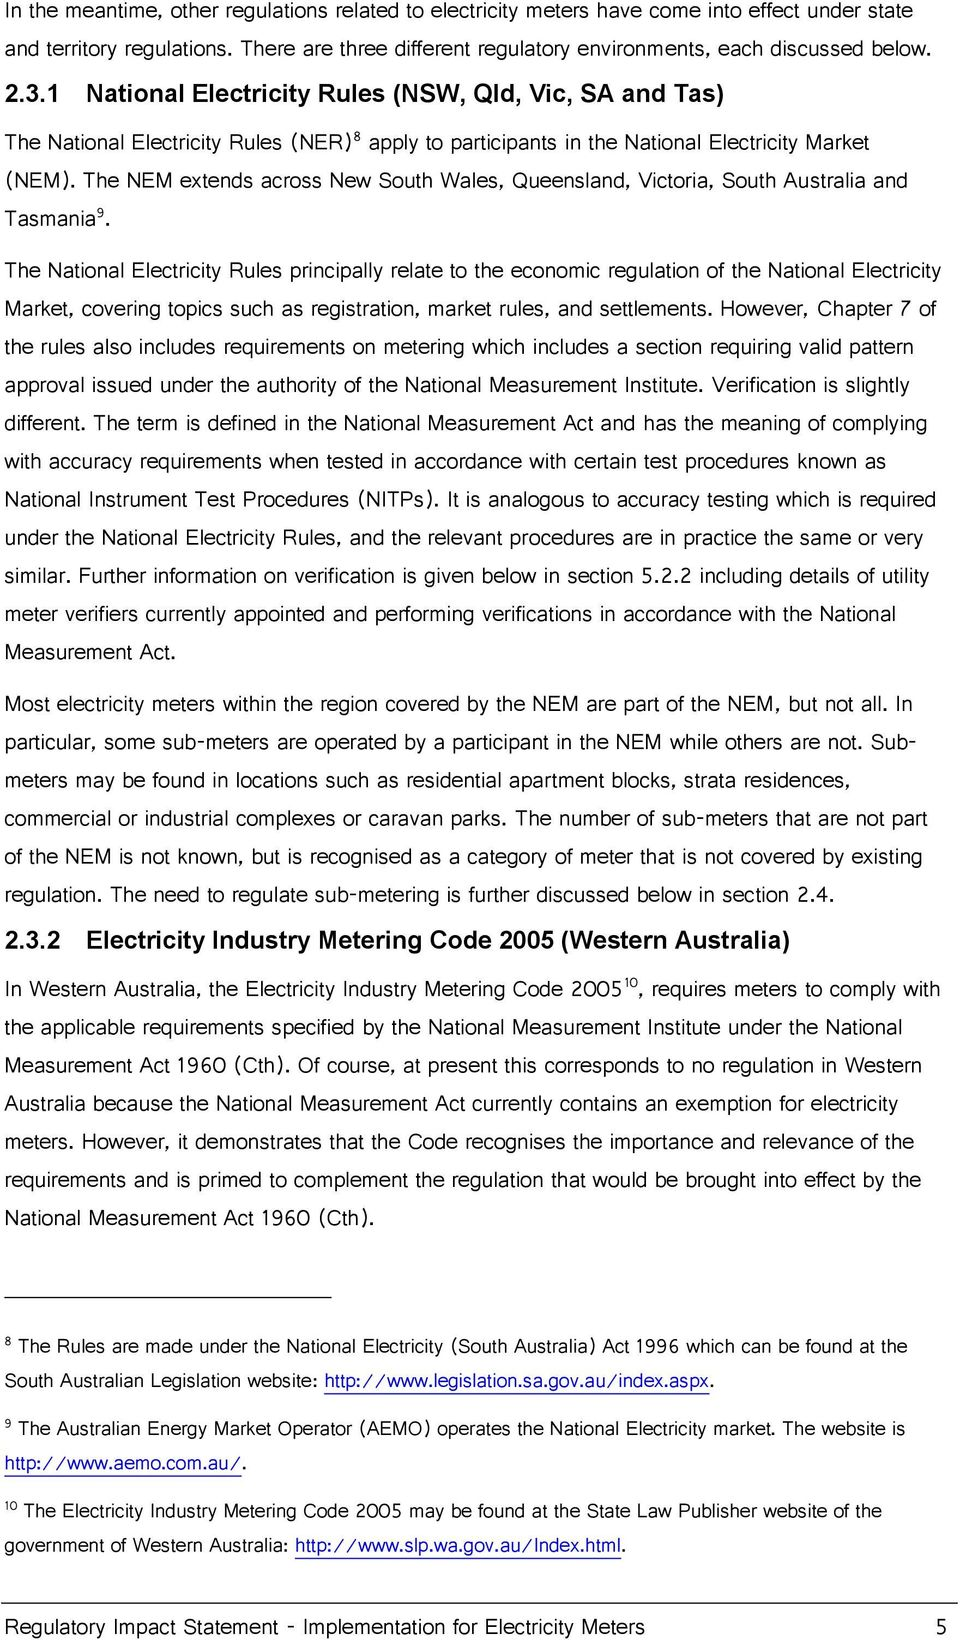 The NEM extends across New South Wales, Queensland, Victoria, South Australia and Tasmania 9.